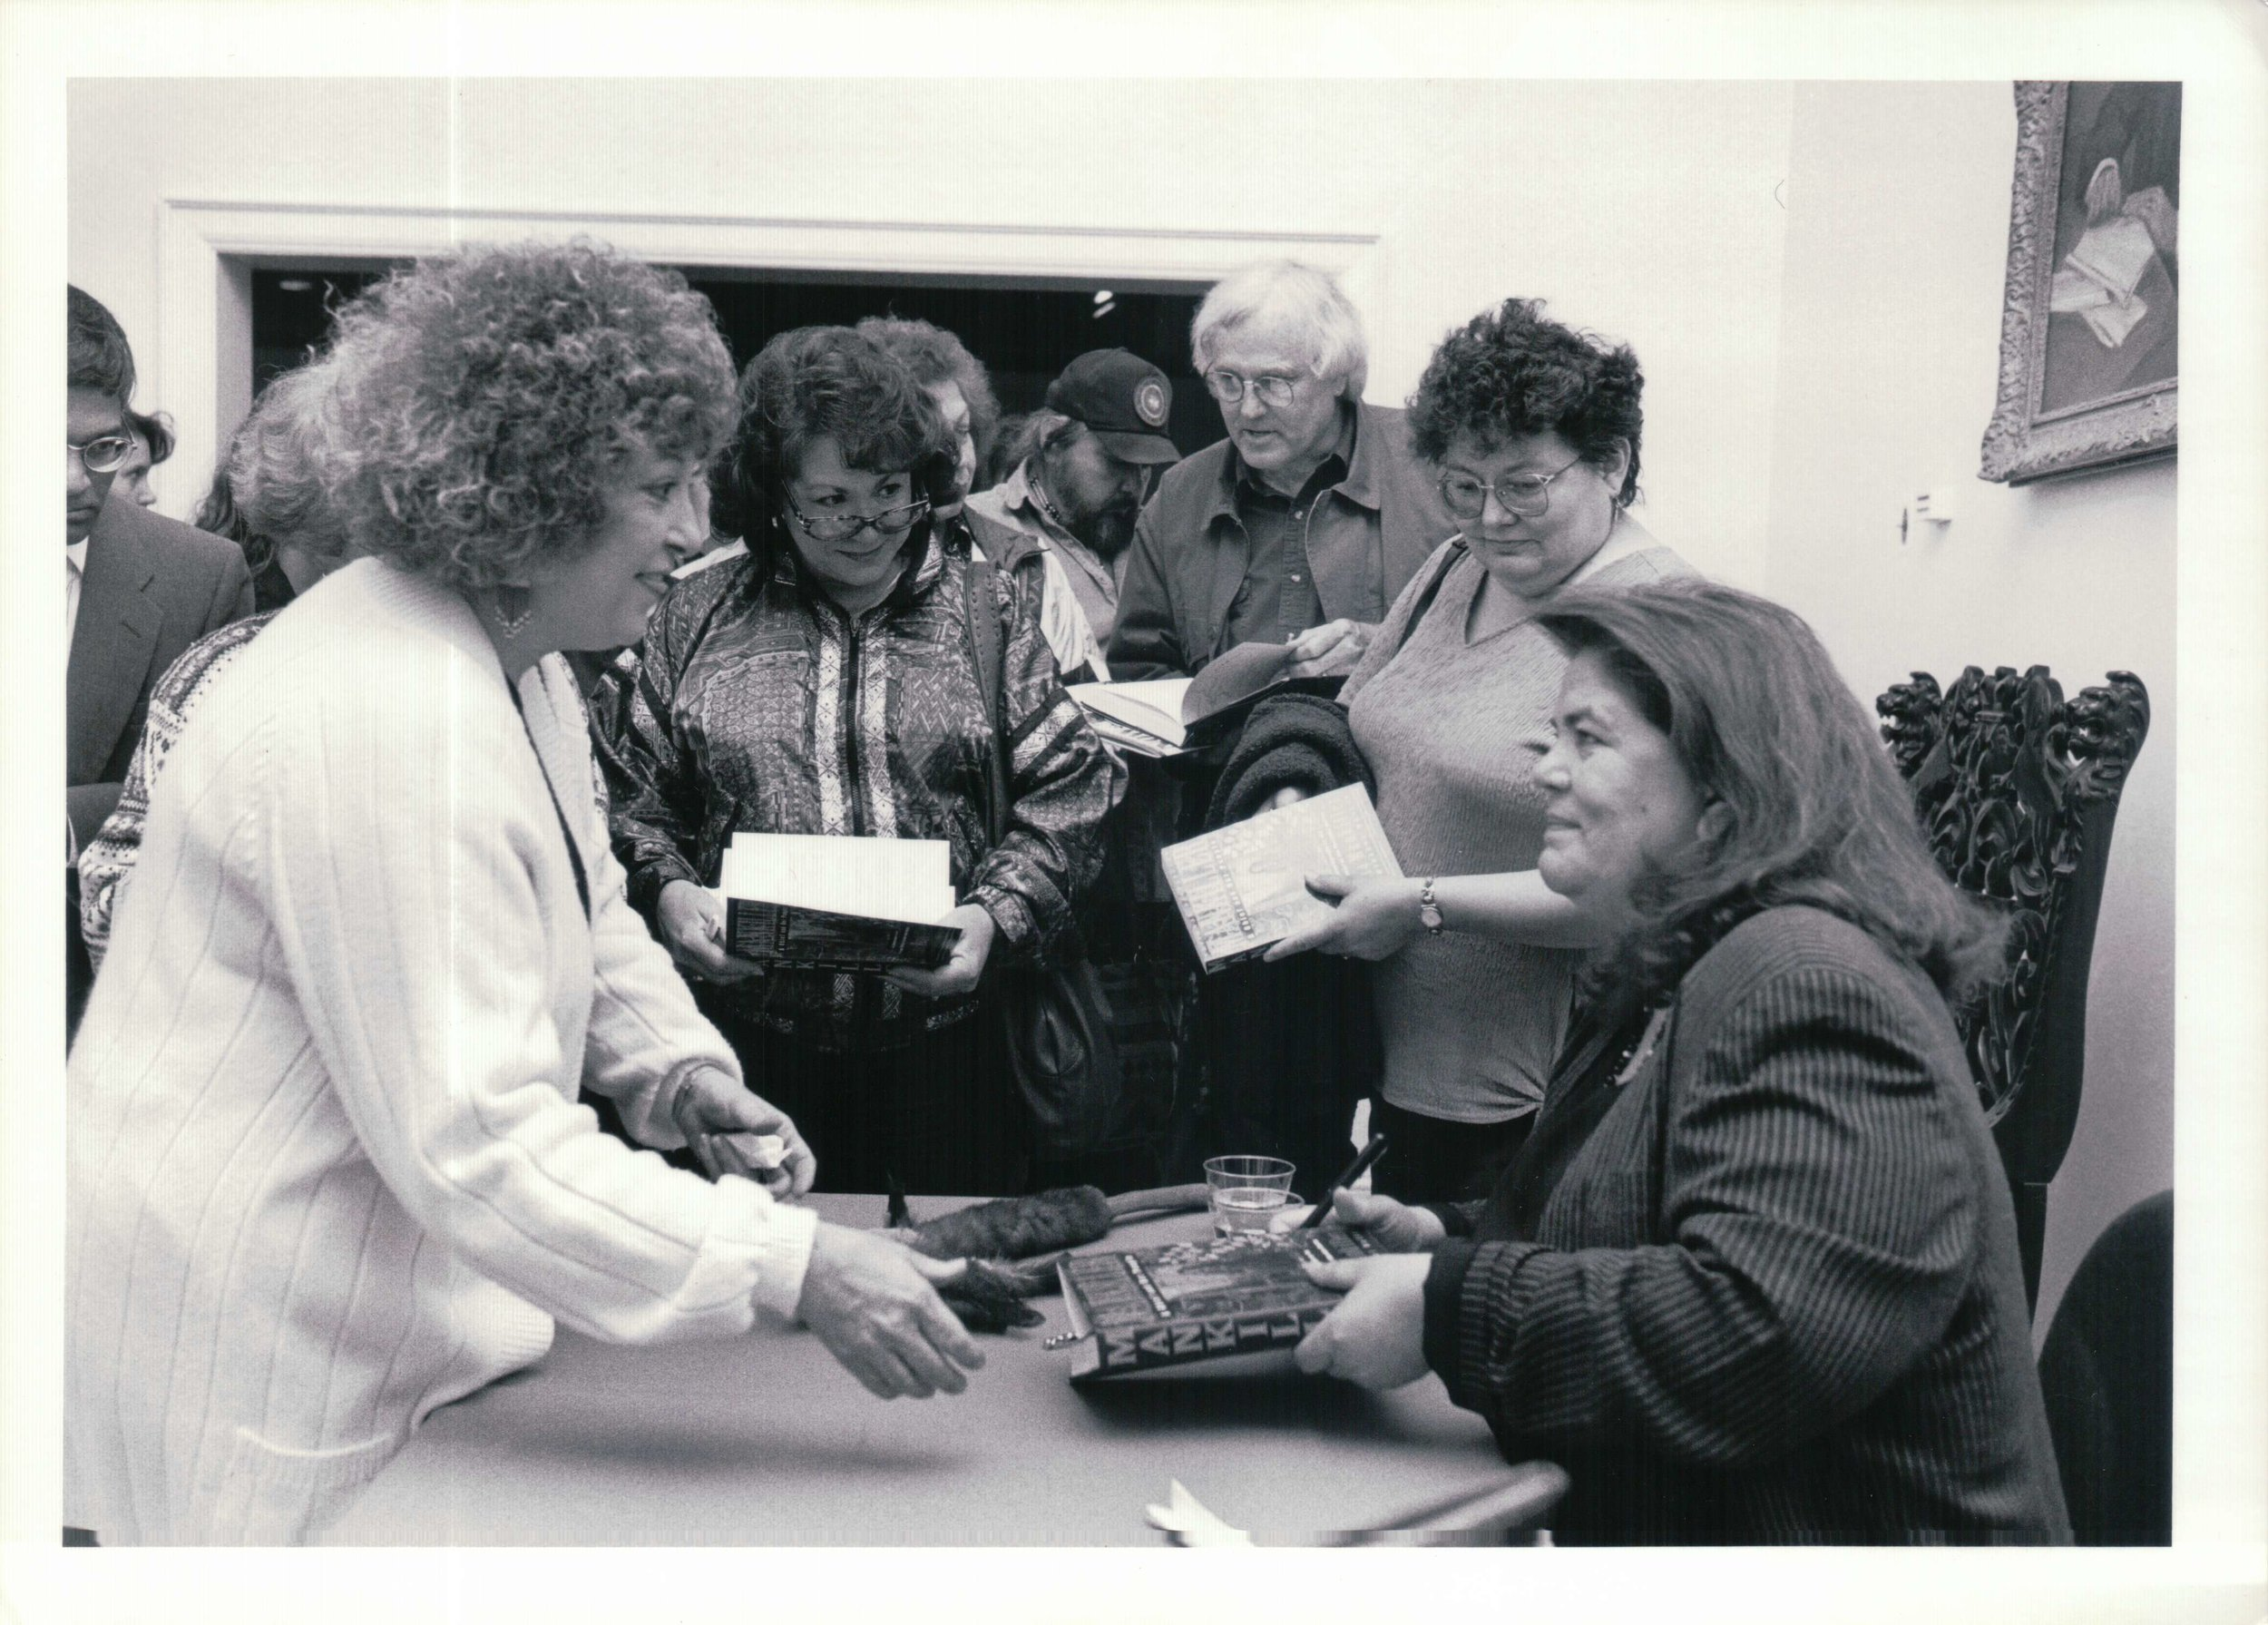 Wilma Mankiller autographs her book